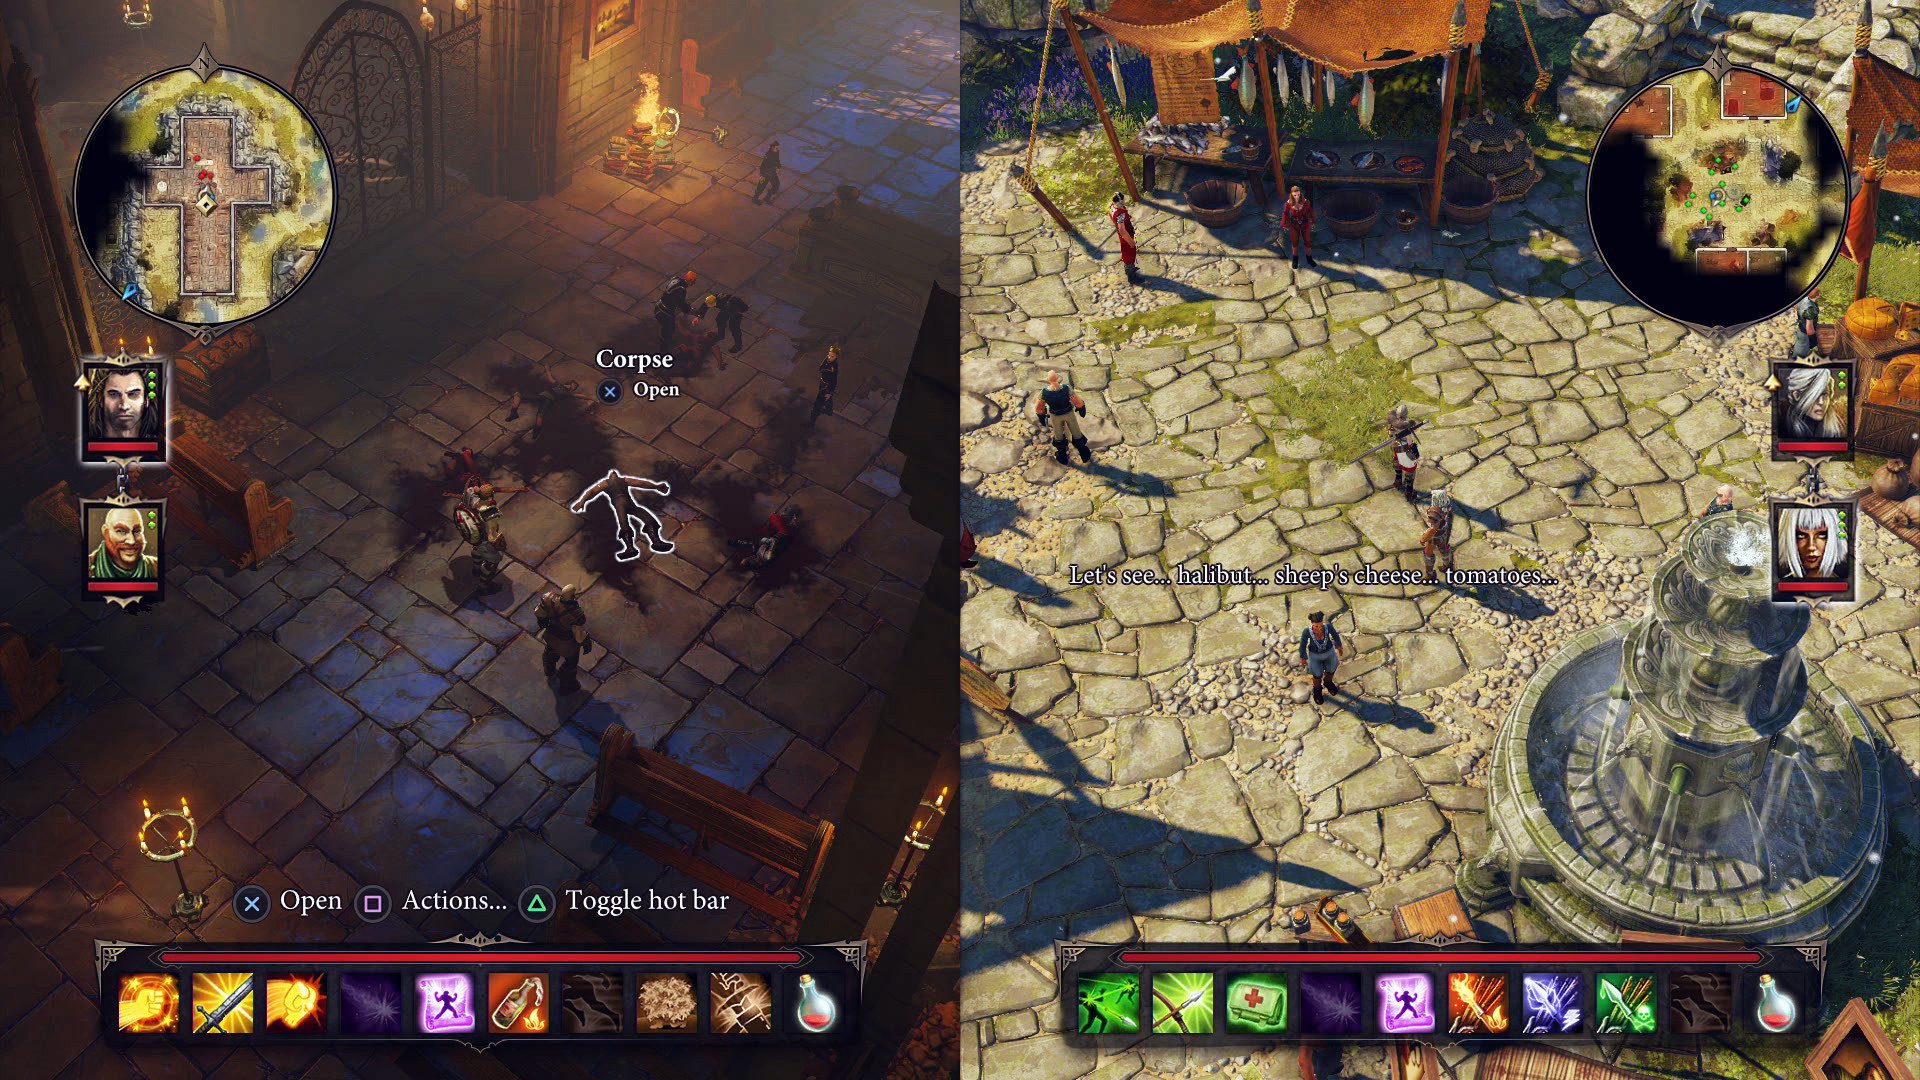 A screenshot of the game, Divinity Original Sin showing split screen gameplay. Games to play with your partner